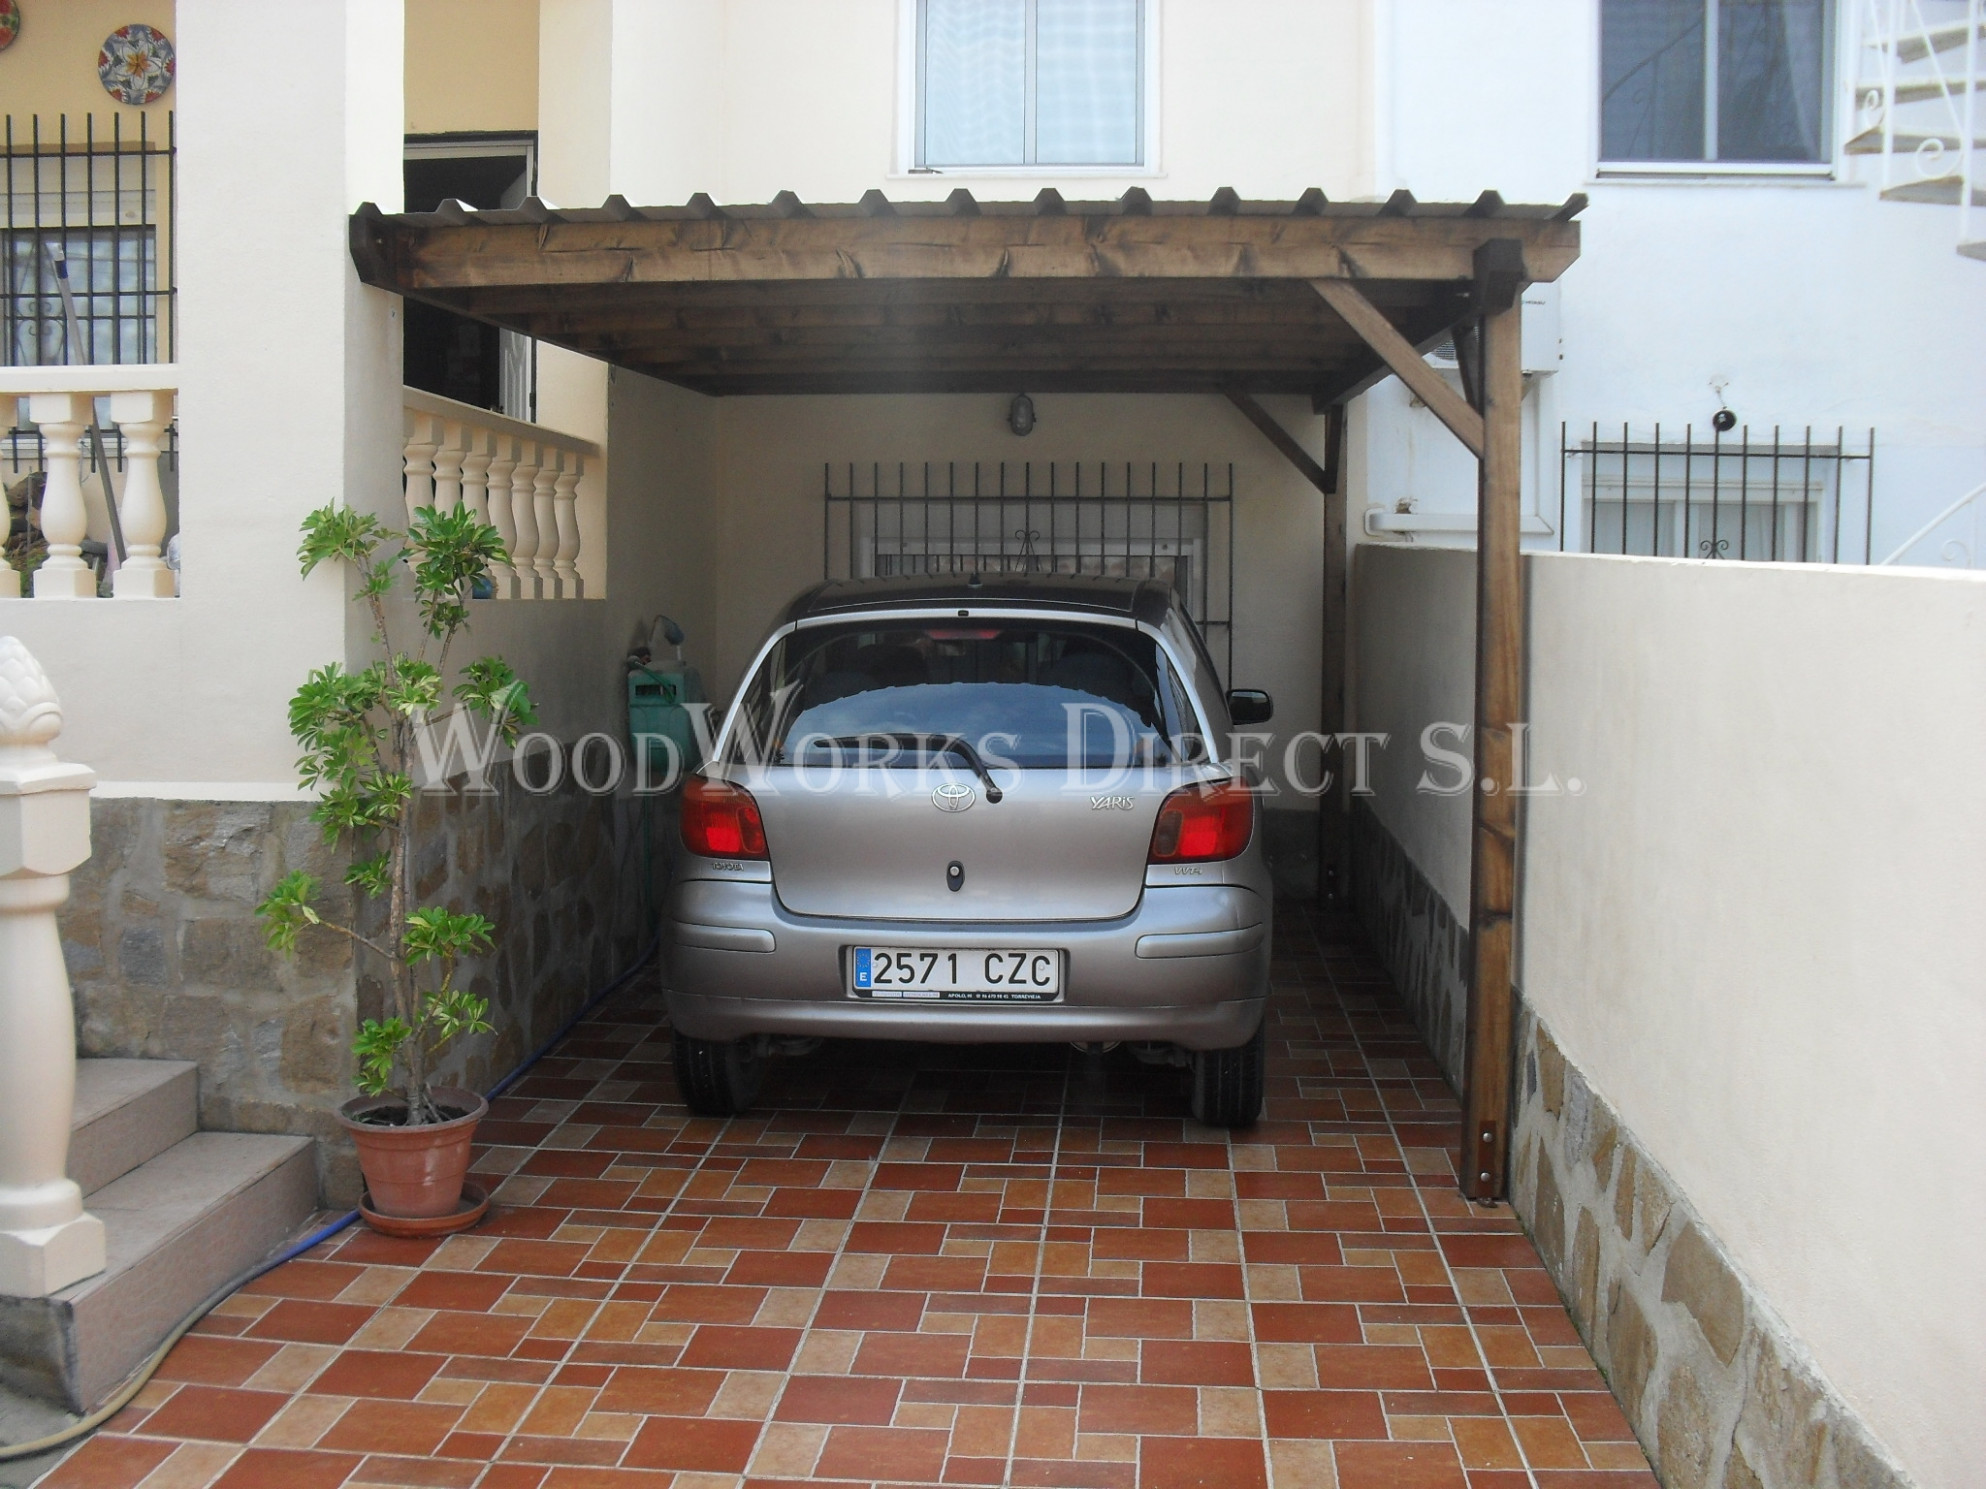 Solid Wooden Carports By WoodWorks Direct | Woodworks Direct Modern Timber Carport